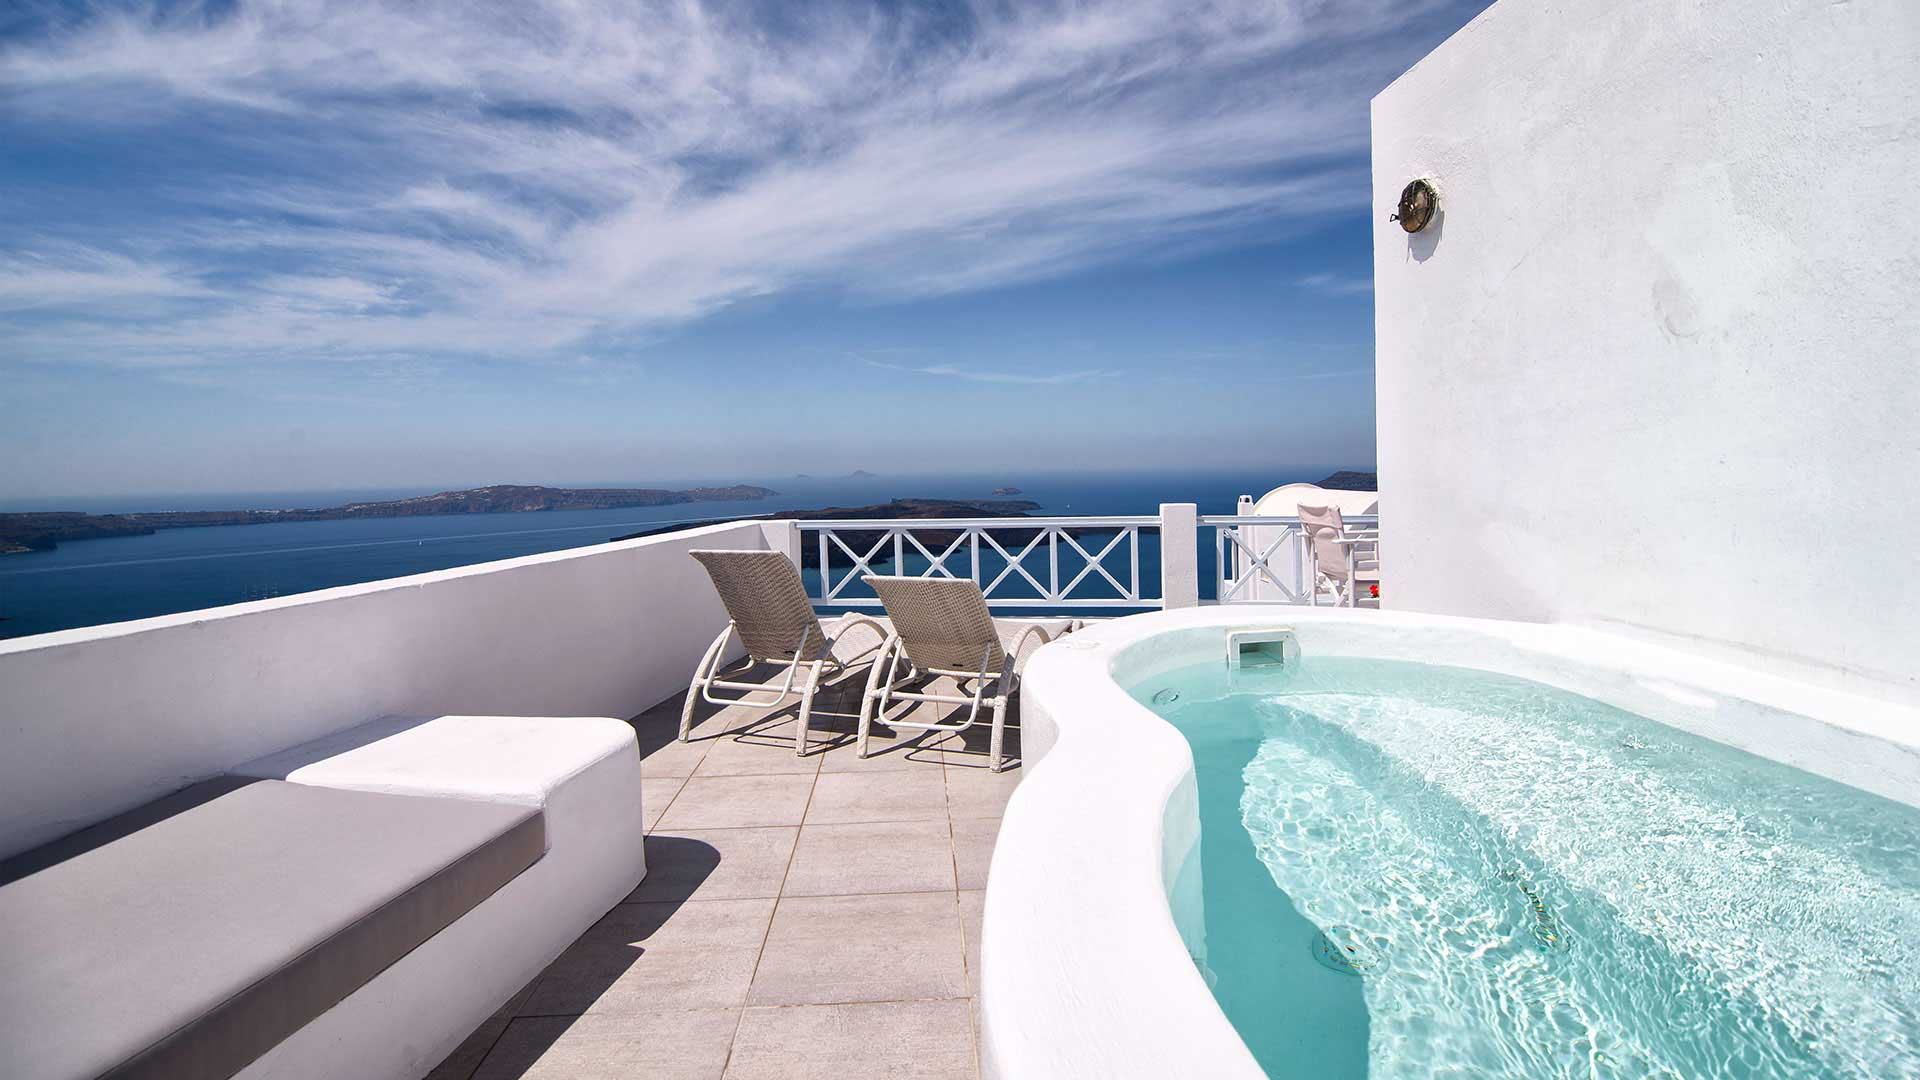 Honeymoon Beach Hotel Santorini Greece